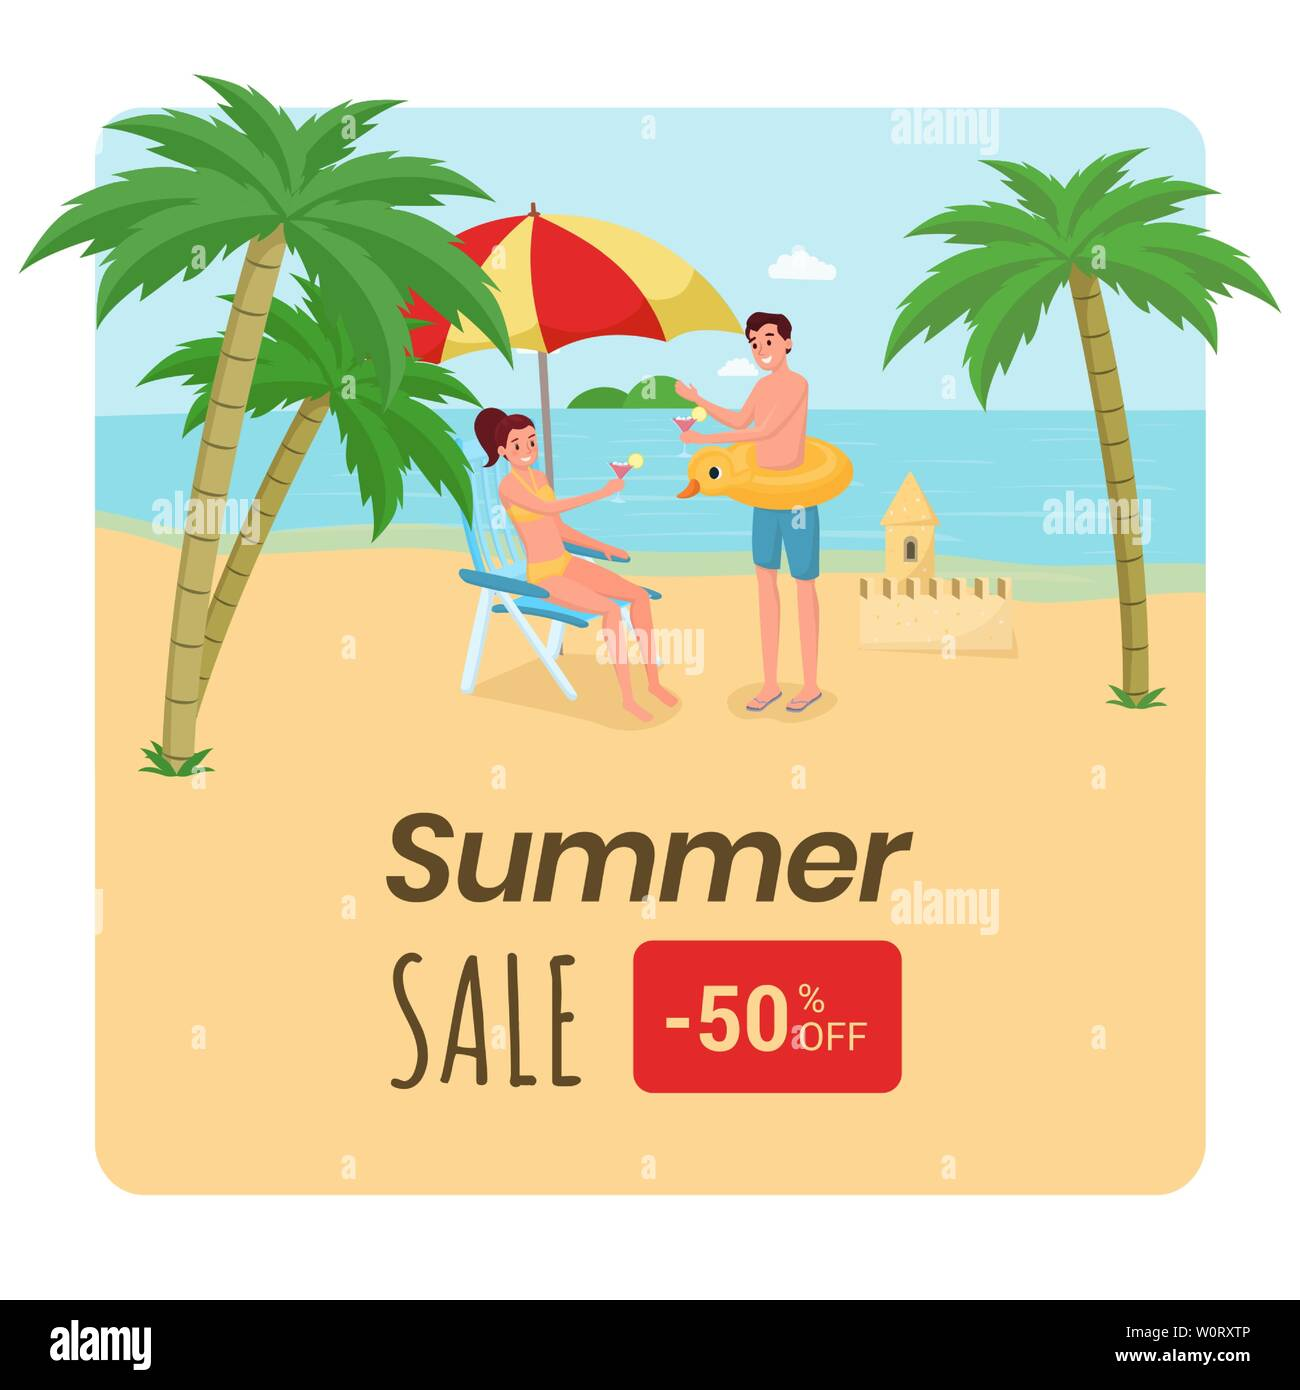 Travel agency discount offer poster template. Happy family, couple on honeymoon trip enjoying exotic nature, drinking cocktails. Seaside resort 50 percent lower price advert for social media post - Stock Vector